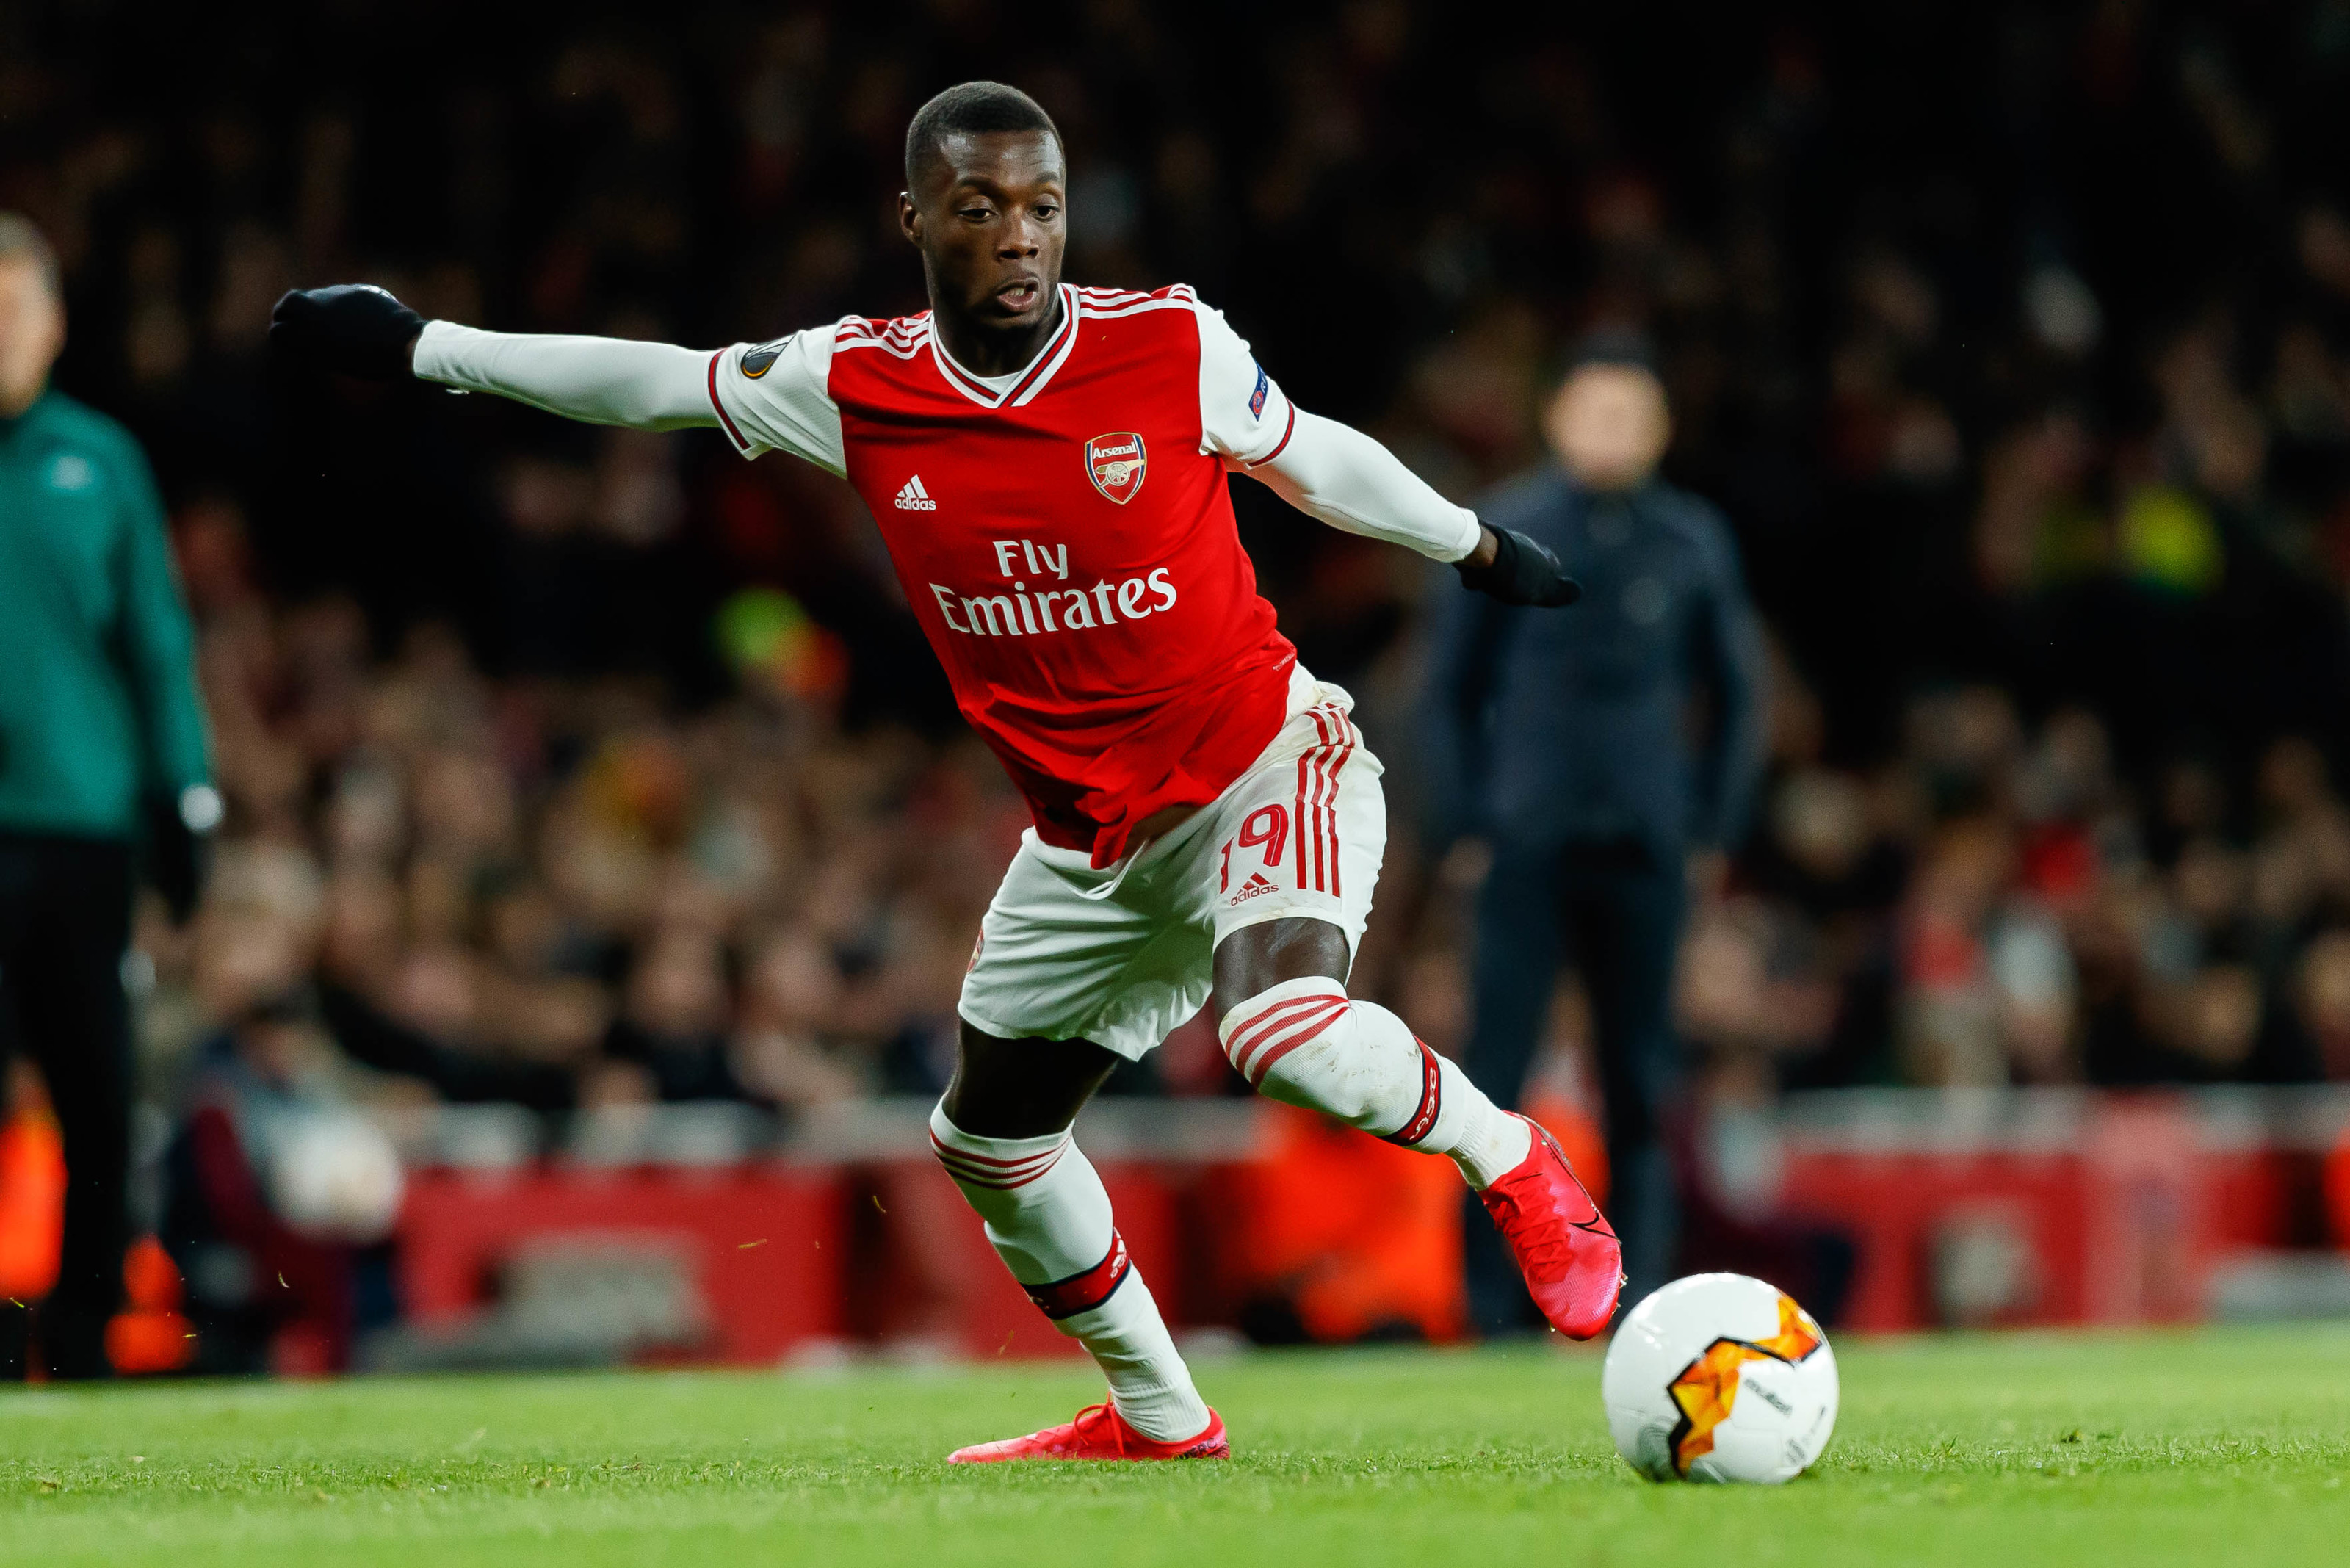 Arsenal: Nicolas Pepe's first season a snippet of his potential?